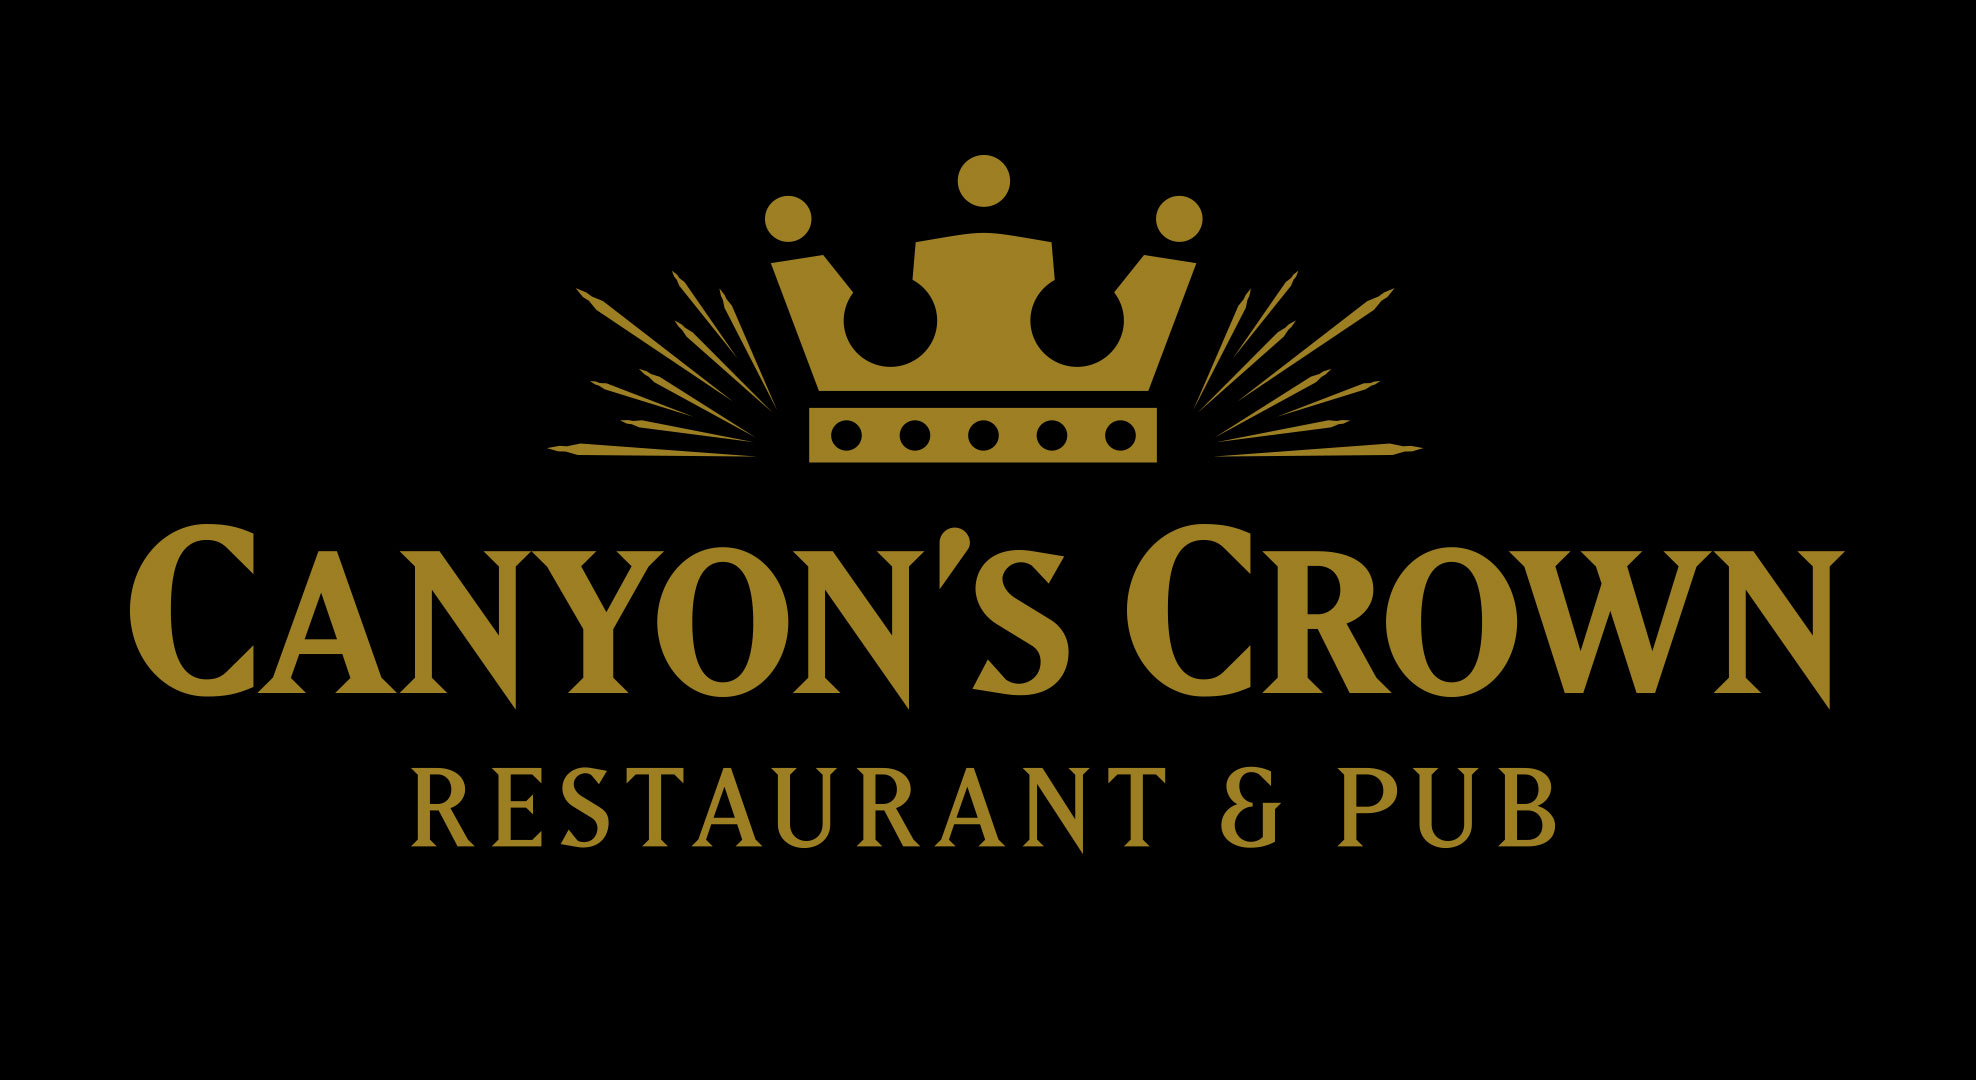 Canyon's Crown Restaurant & Pub